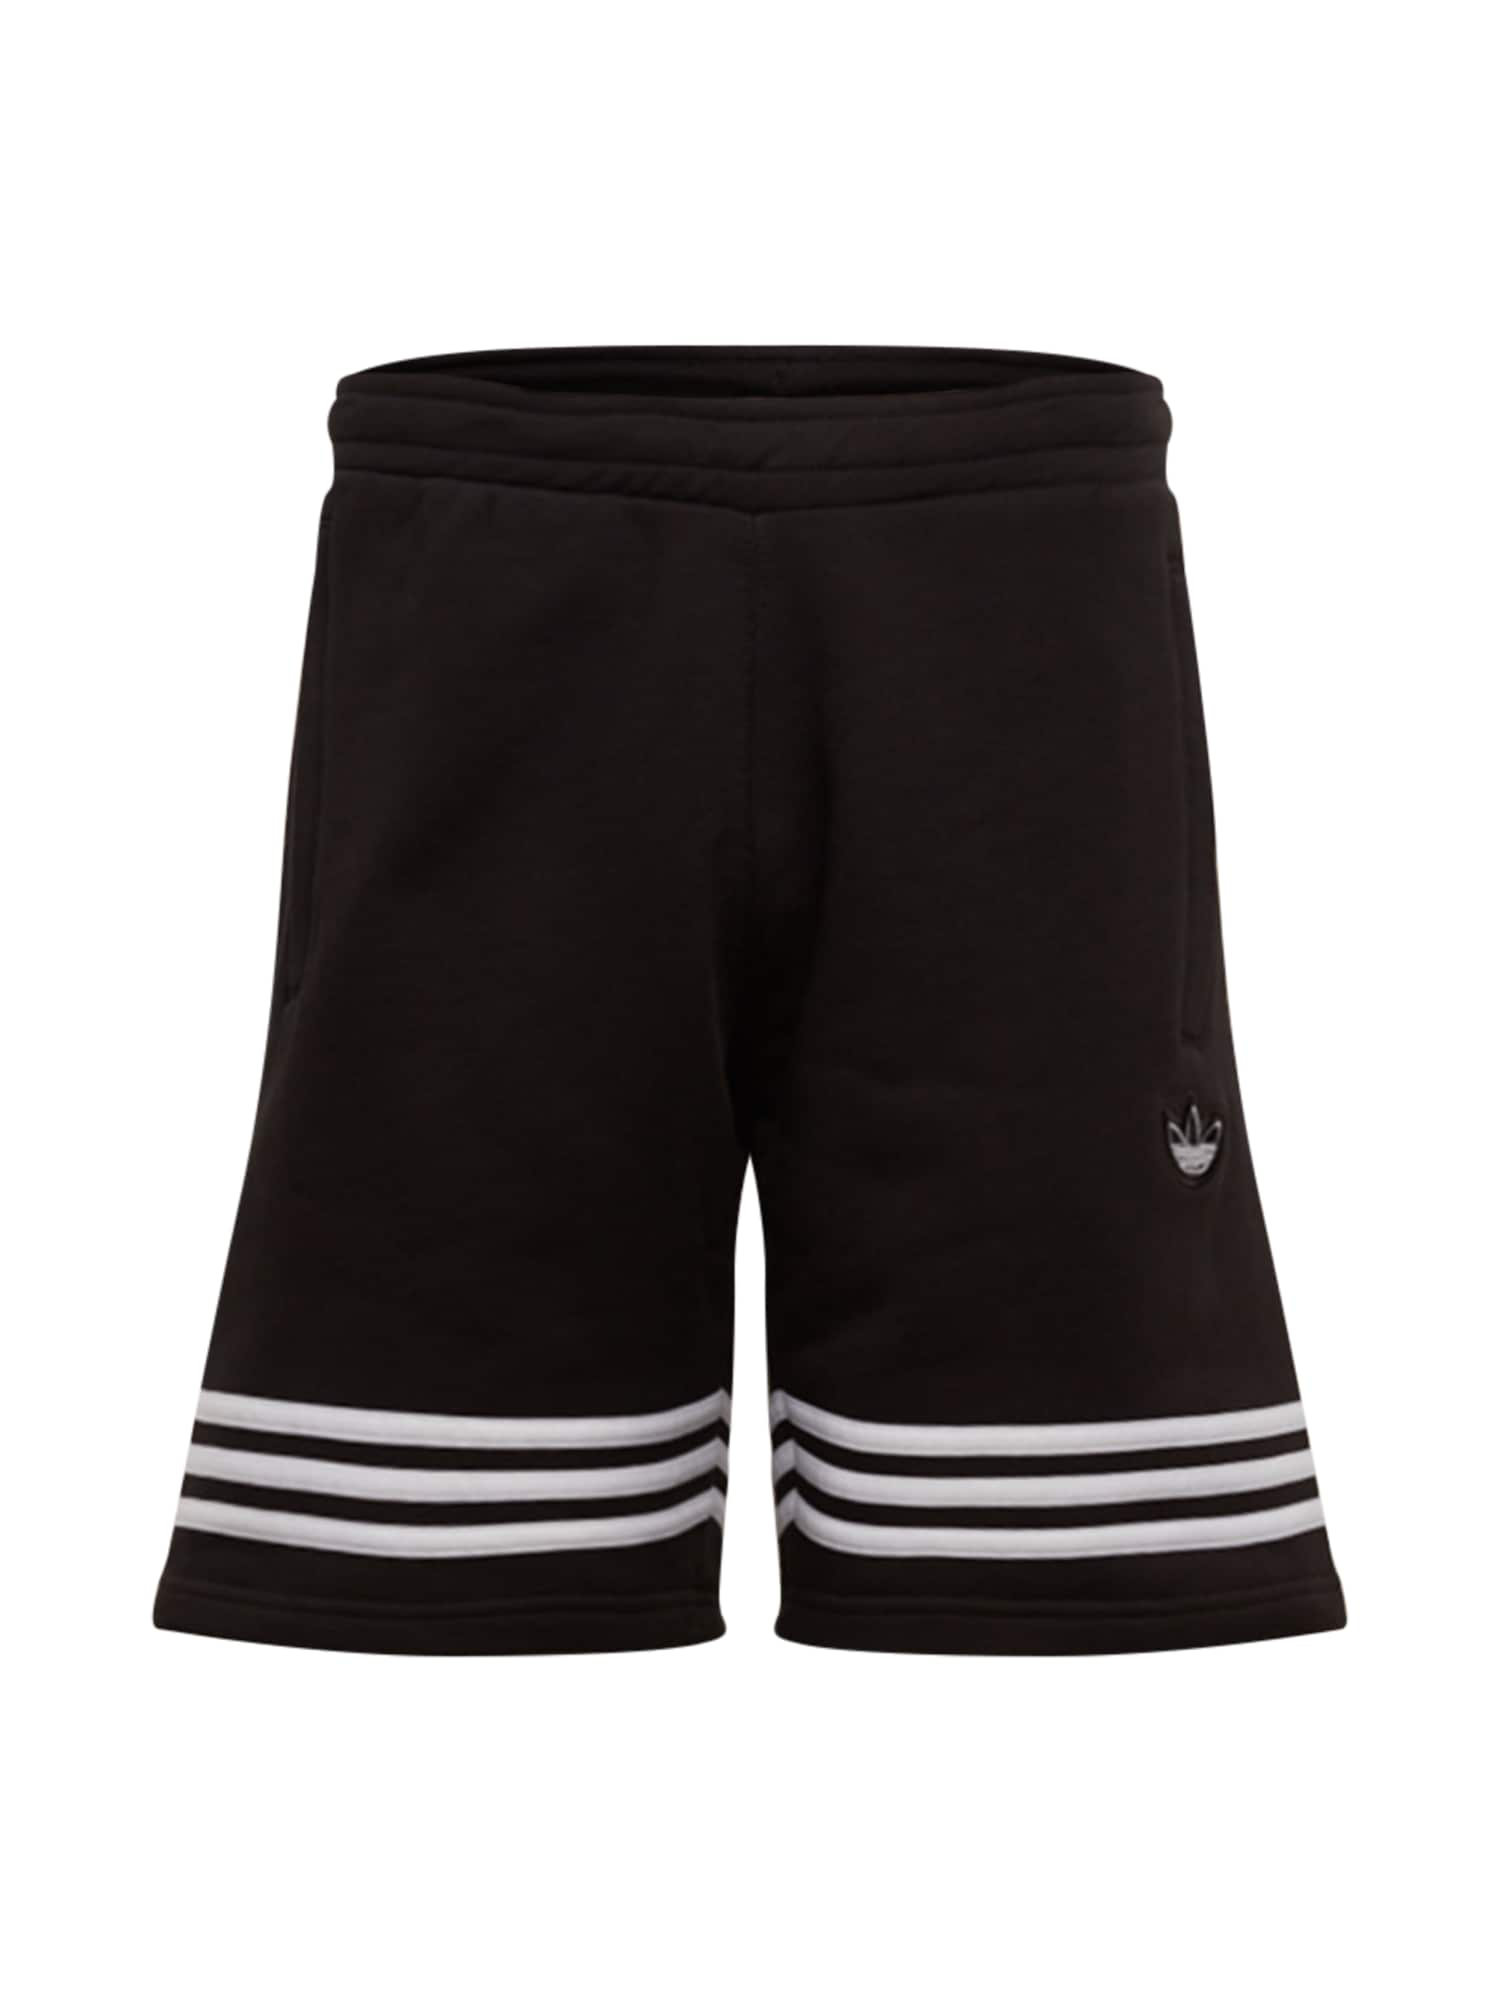 ADIDAS ORIGINALS Kelnės 'OUTLINE SHORT' balta / juoda